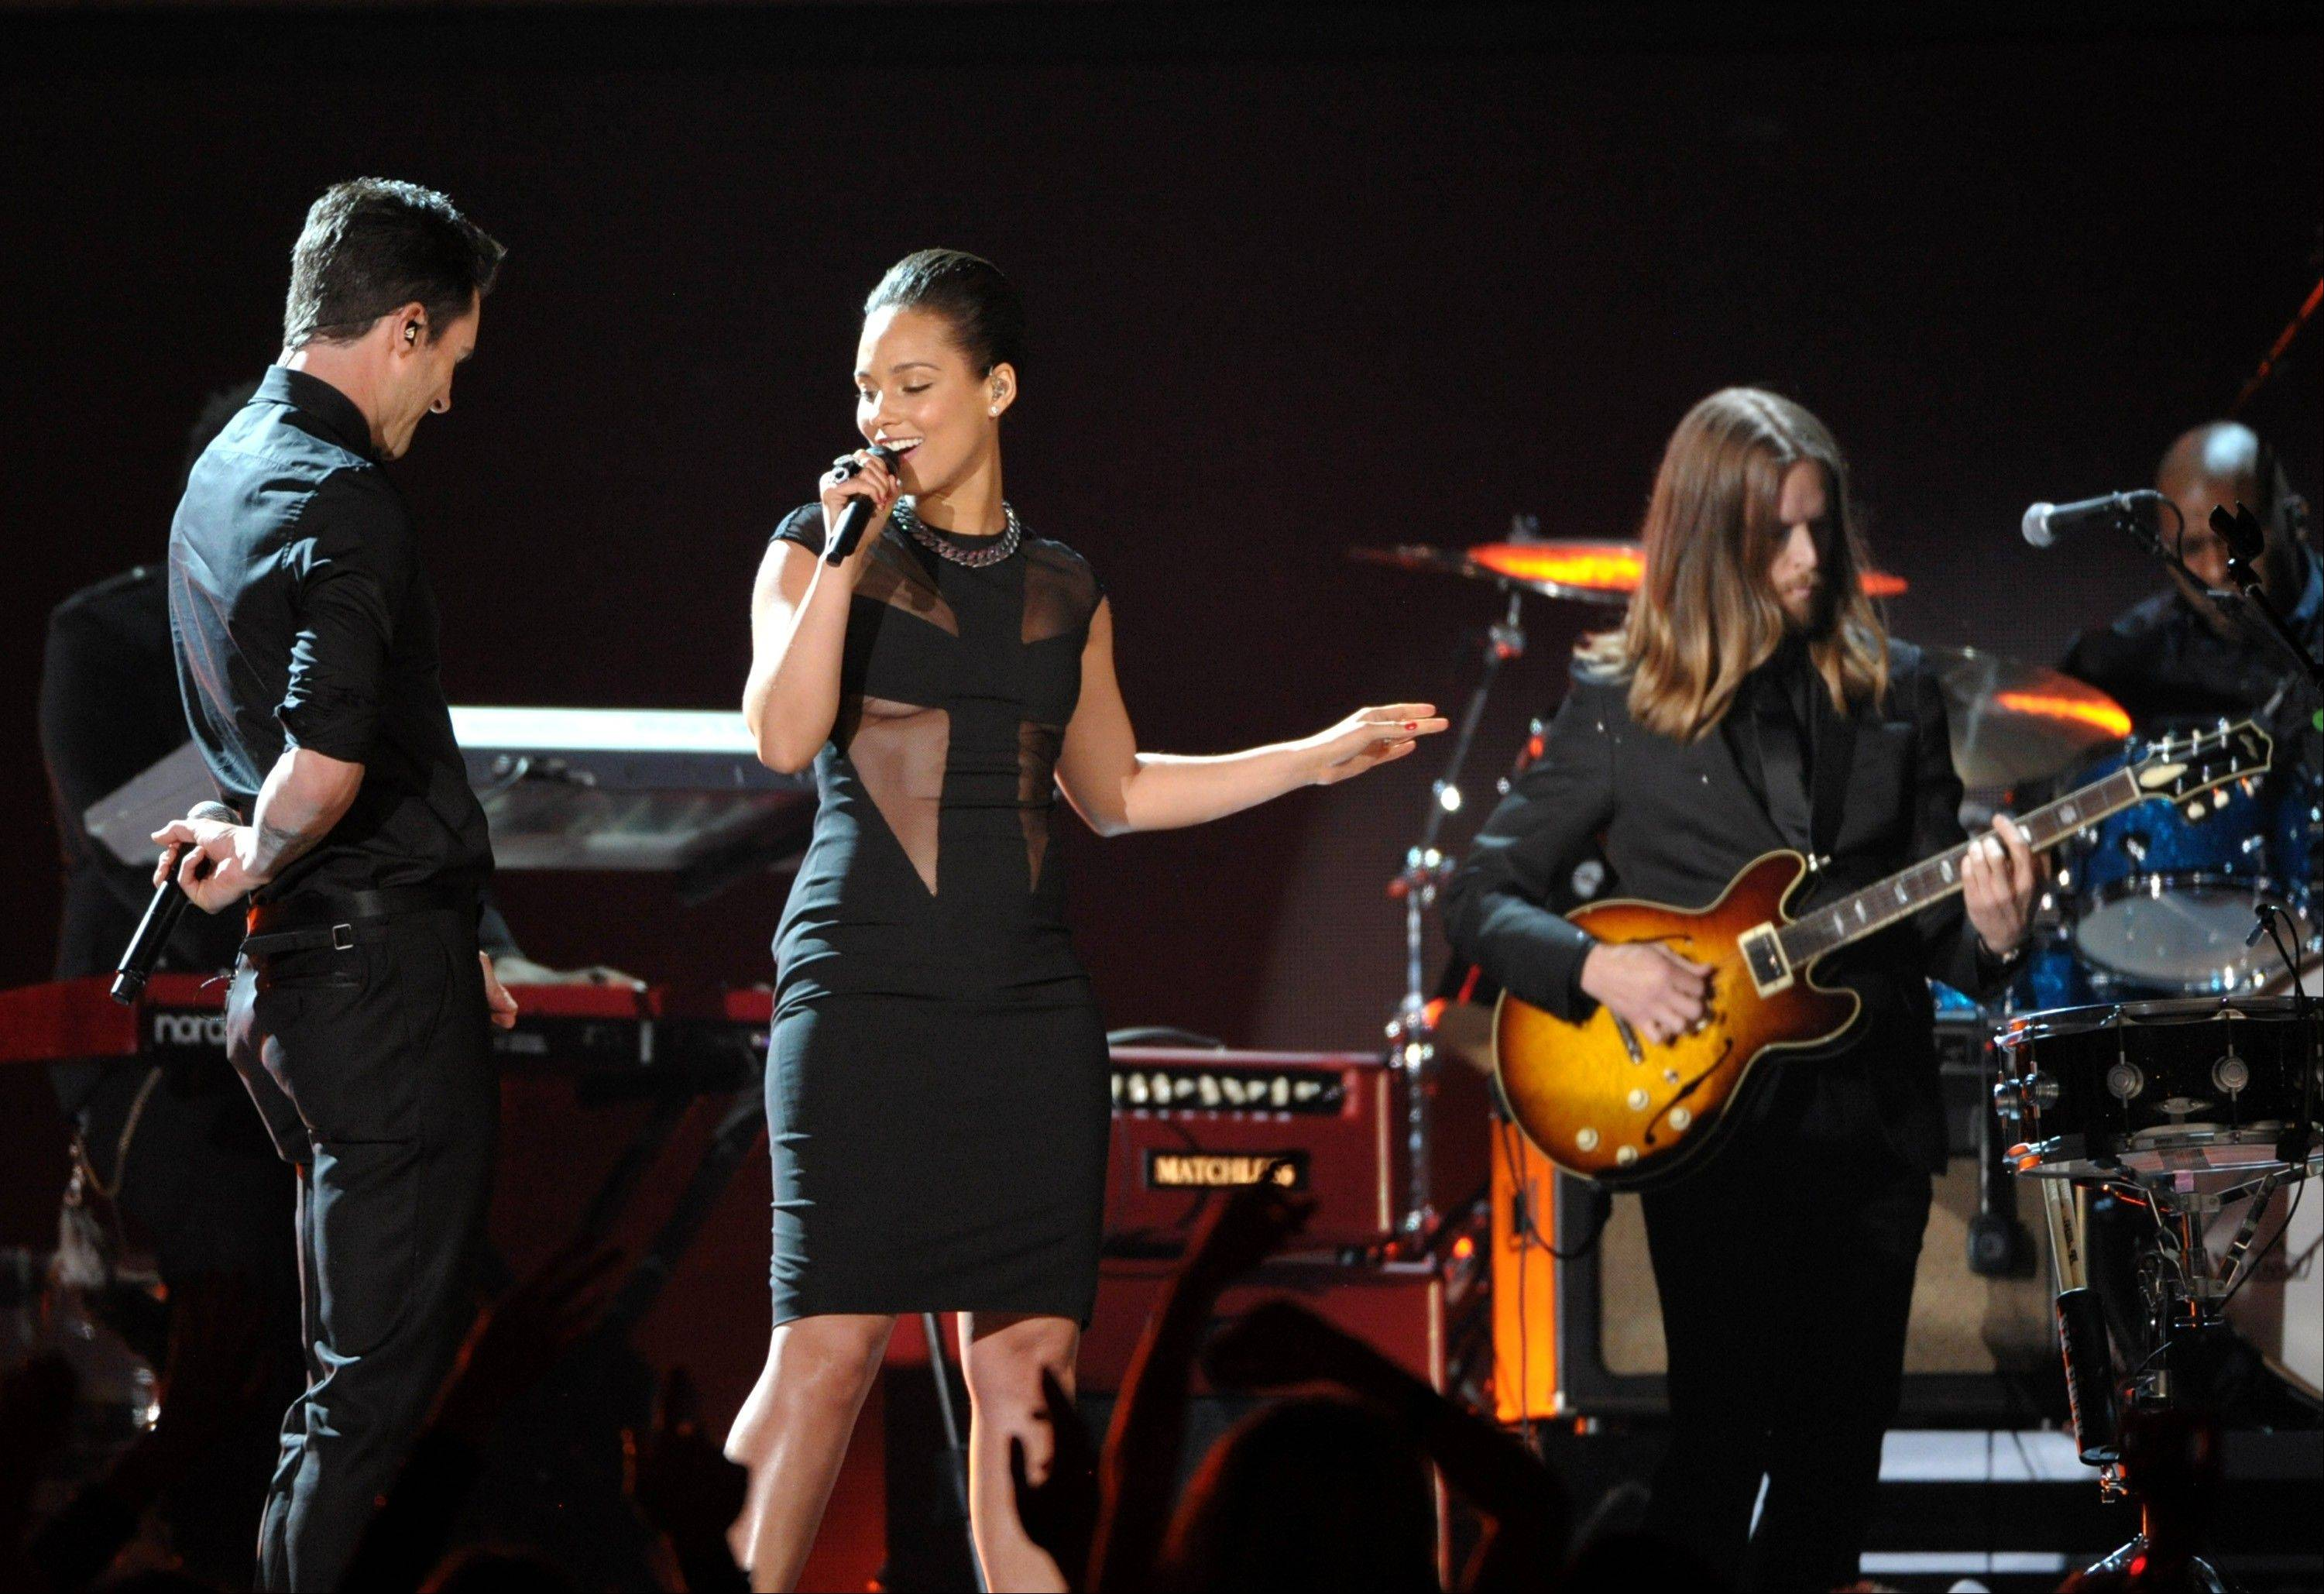 Adam Levine, left, of Maroon 5, and Alicia Keys perform at the 55th annual Grammy Awards on Sunday, Feb. 10, 2013, in Los Angeles. Looking on at right is James Valentine of Maroon 5.